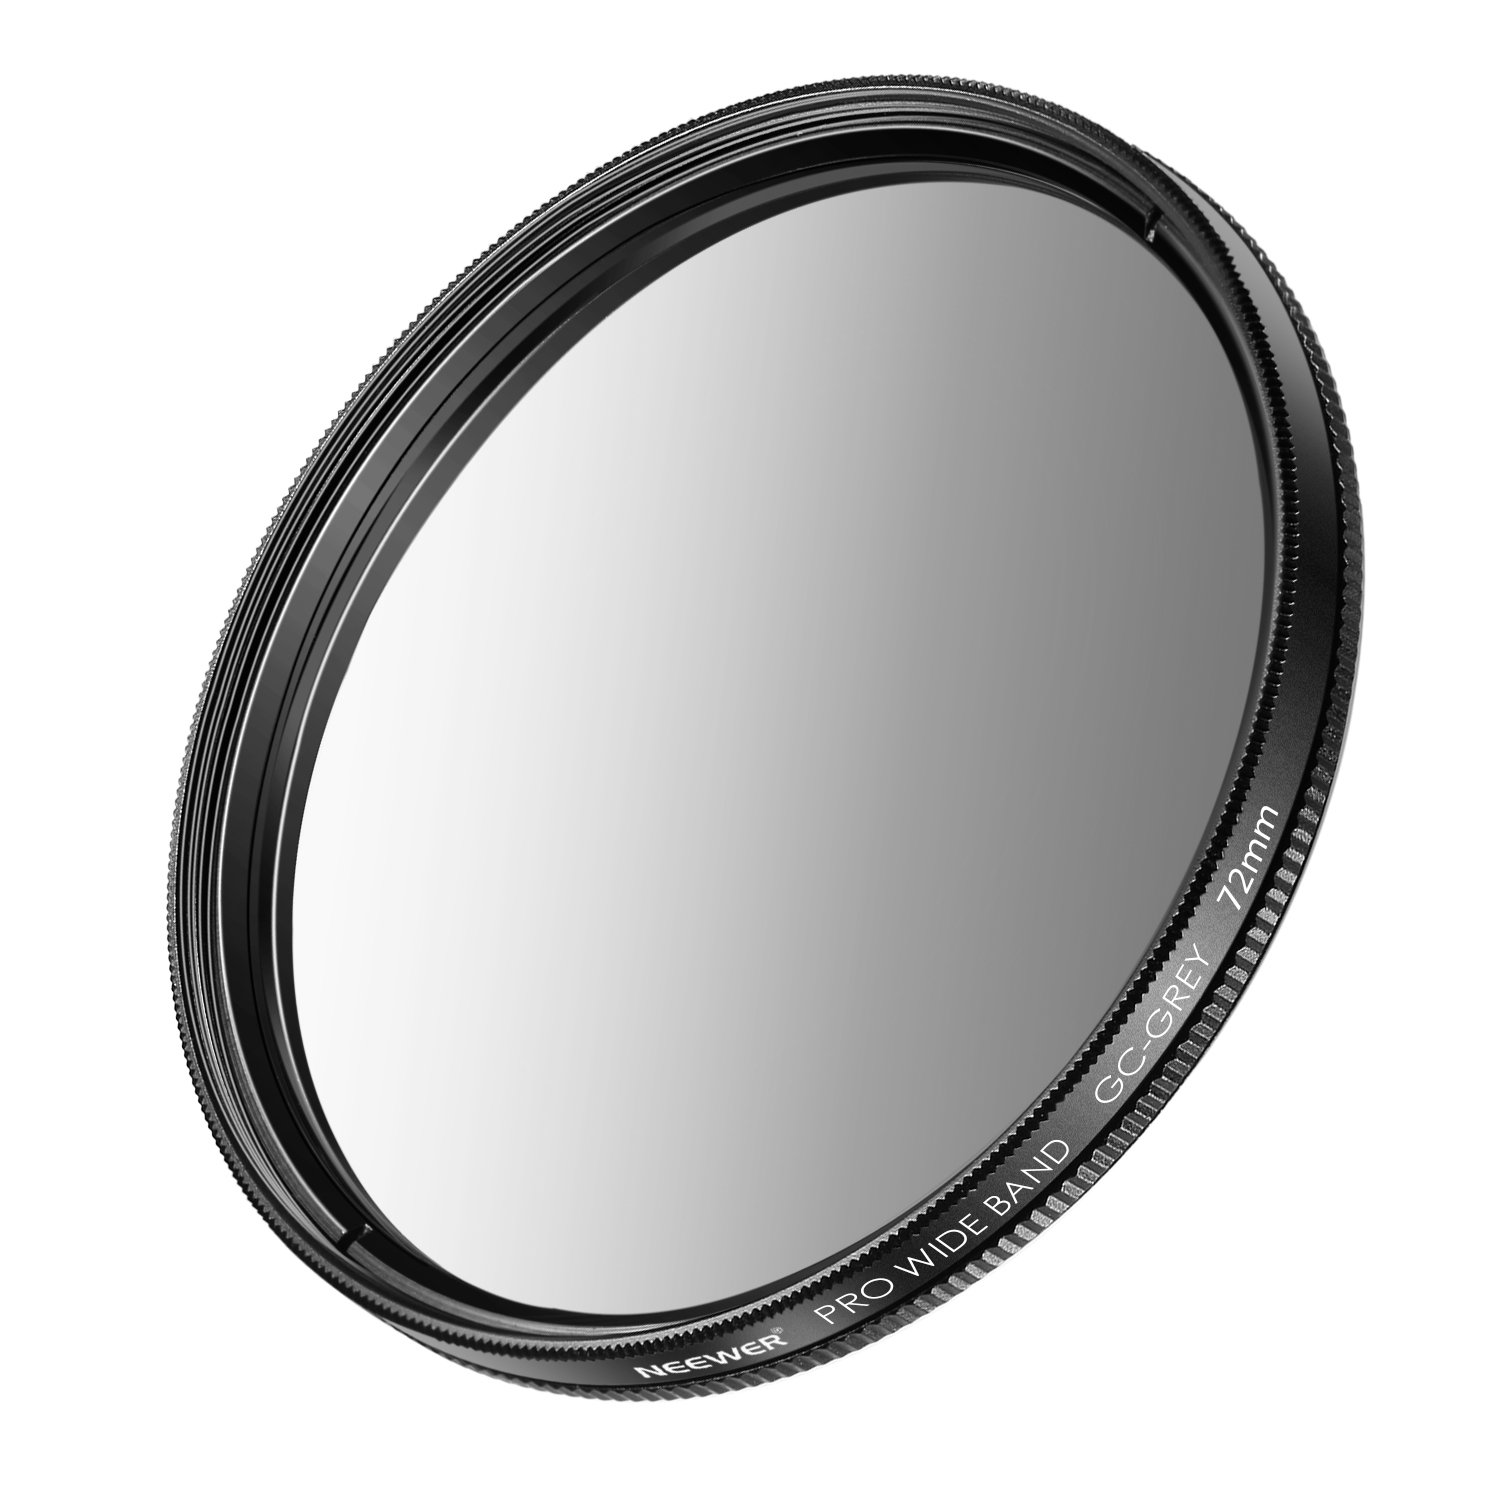 Neewer 72mm Graduated Neutral Density Filter (Grey) for Canon EOS 7D, 60D DSLR Cameras with EF-S 18-200mm f/3.5-5.6 IS, EF 28-135mm f/3.5-5.6 IS USM Zoom Lenses and Other Cameras with 72mm Lens Thread 10091591